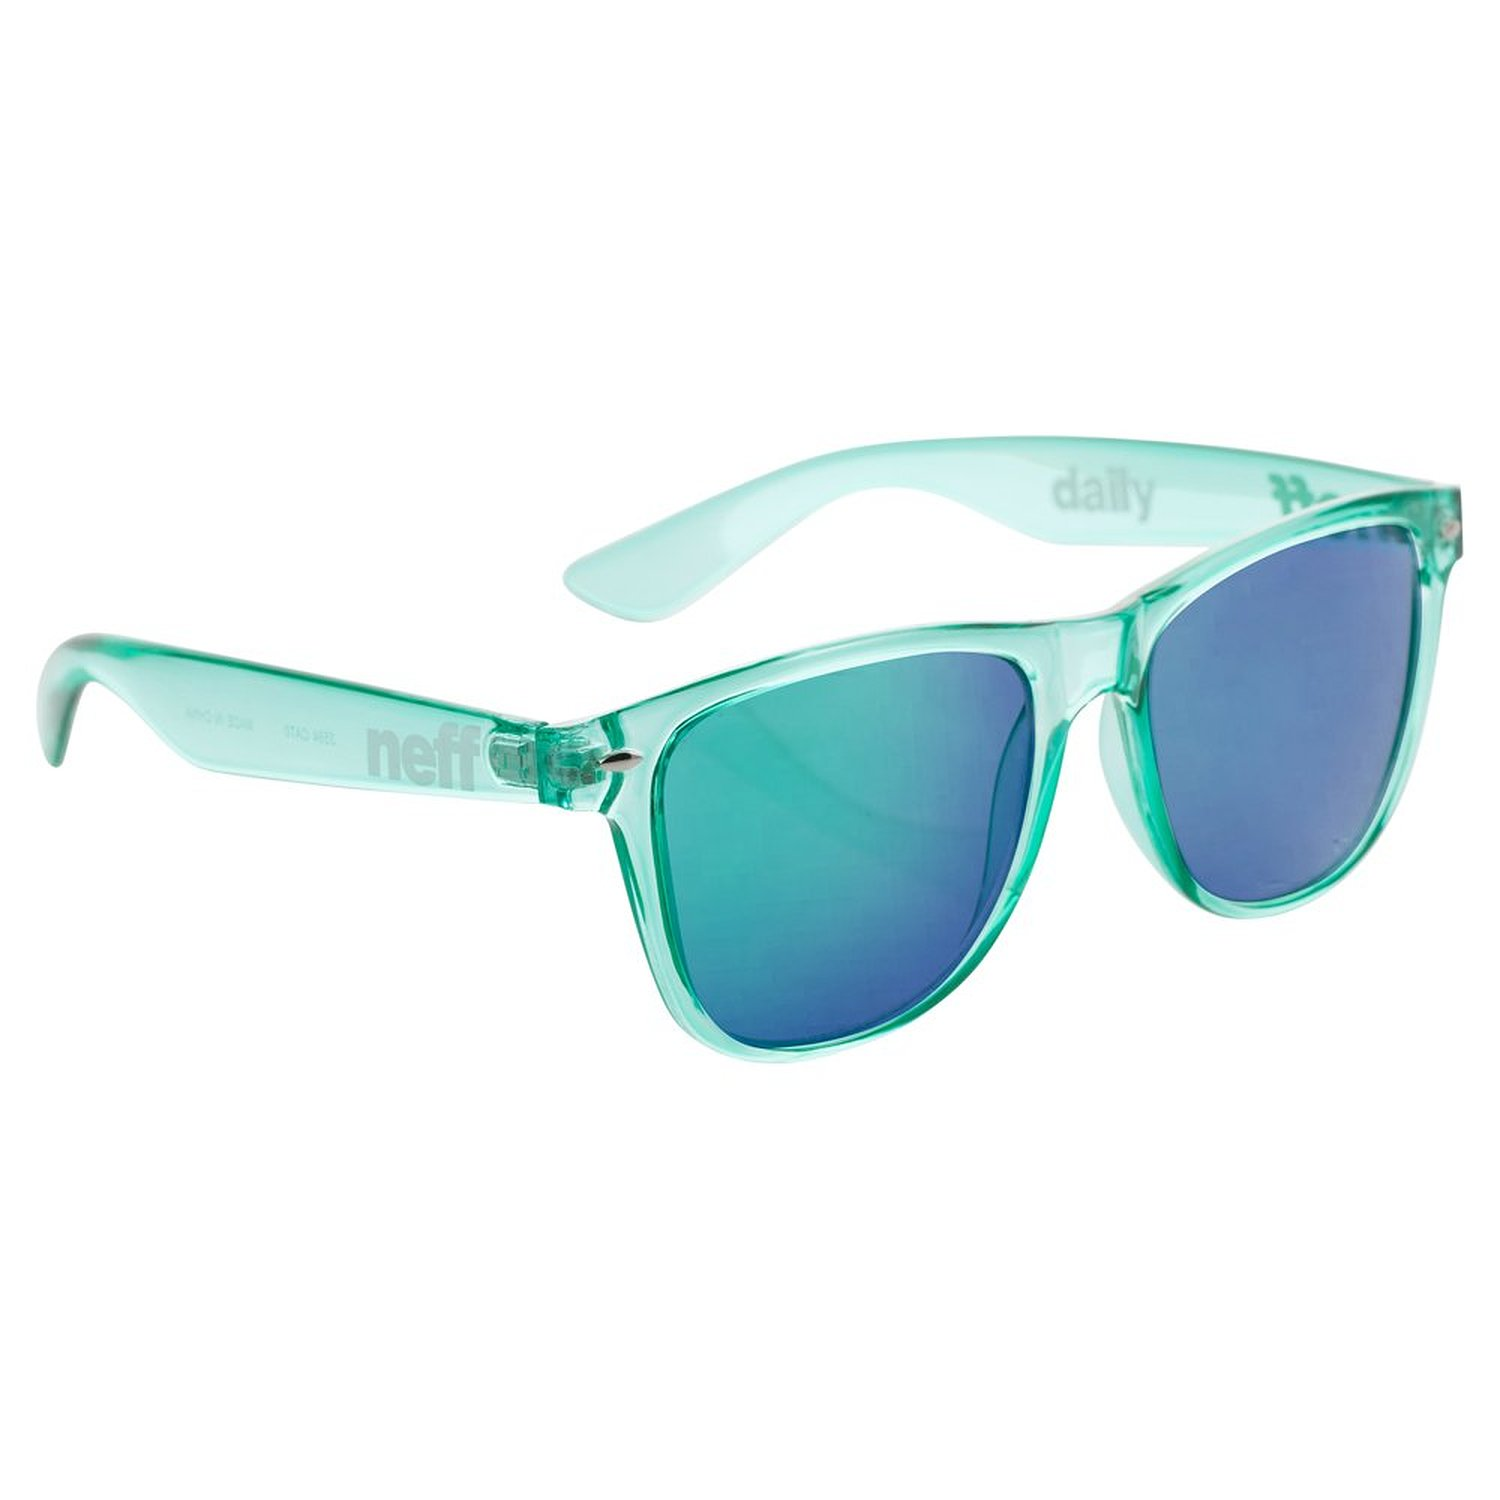 Neff Mens Daily Ice Sunglasses, Teal, One Size Fits All